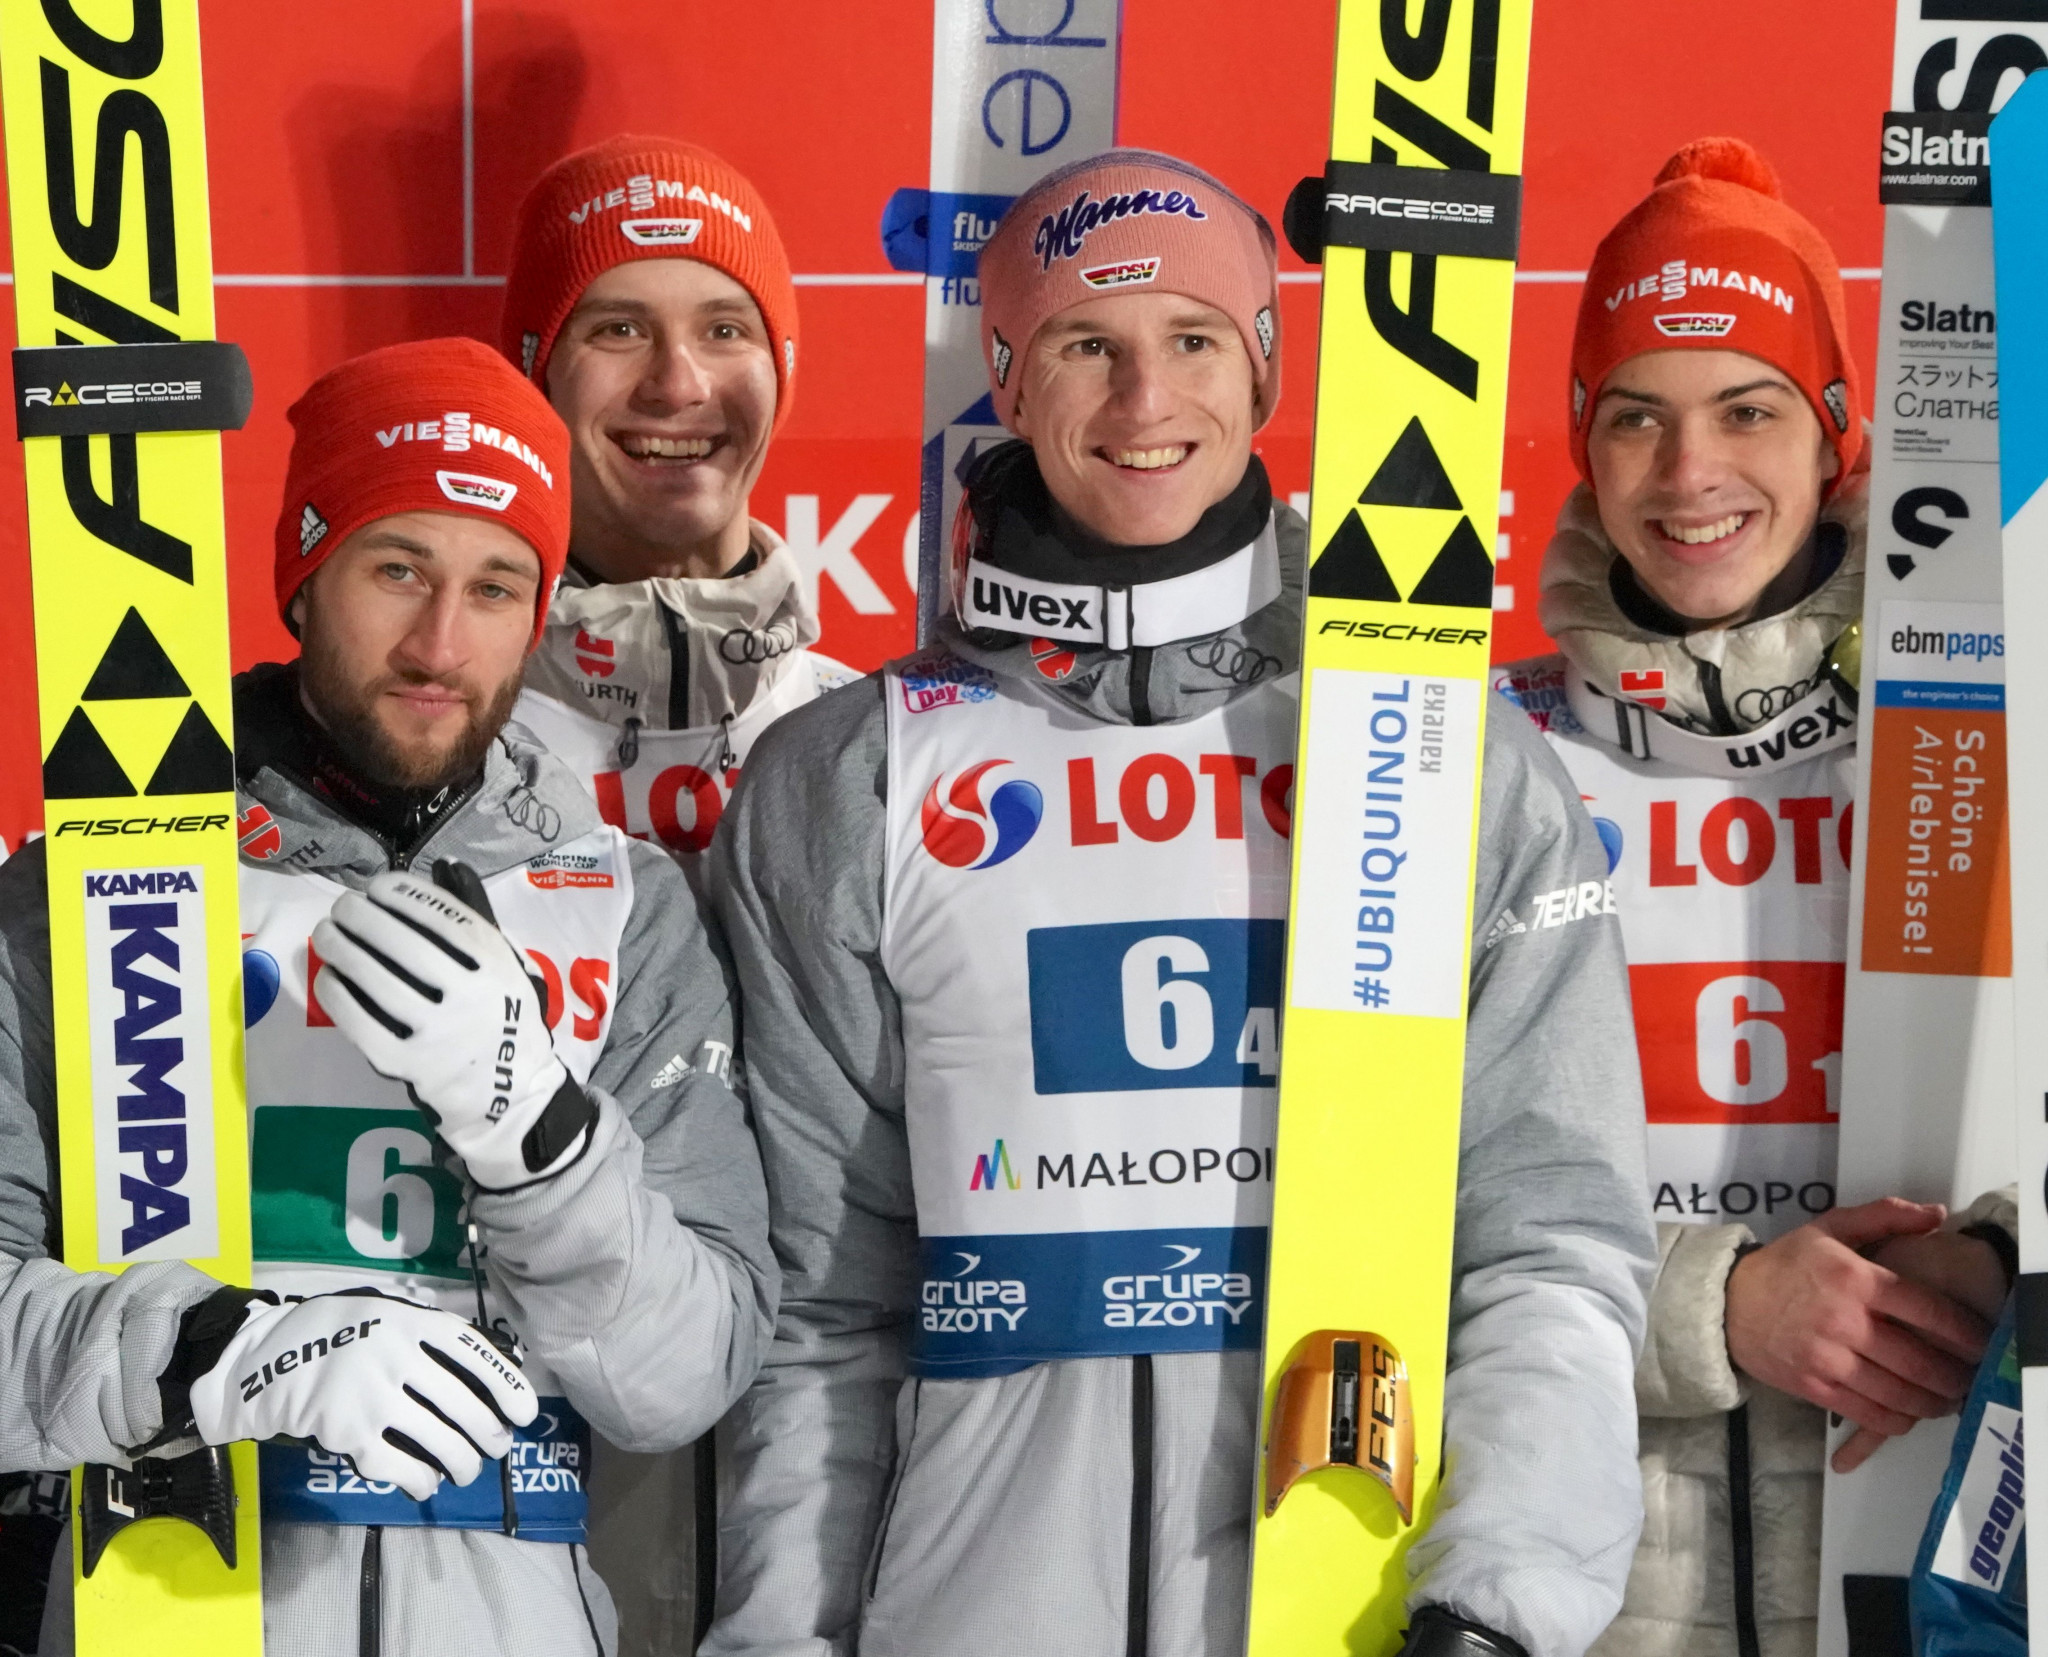 Germany triumph in team event at FIS Ski Jumping World Cup in Zakopane